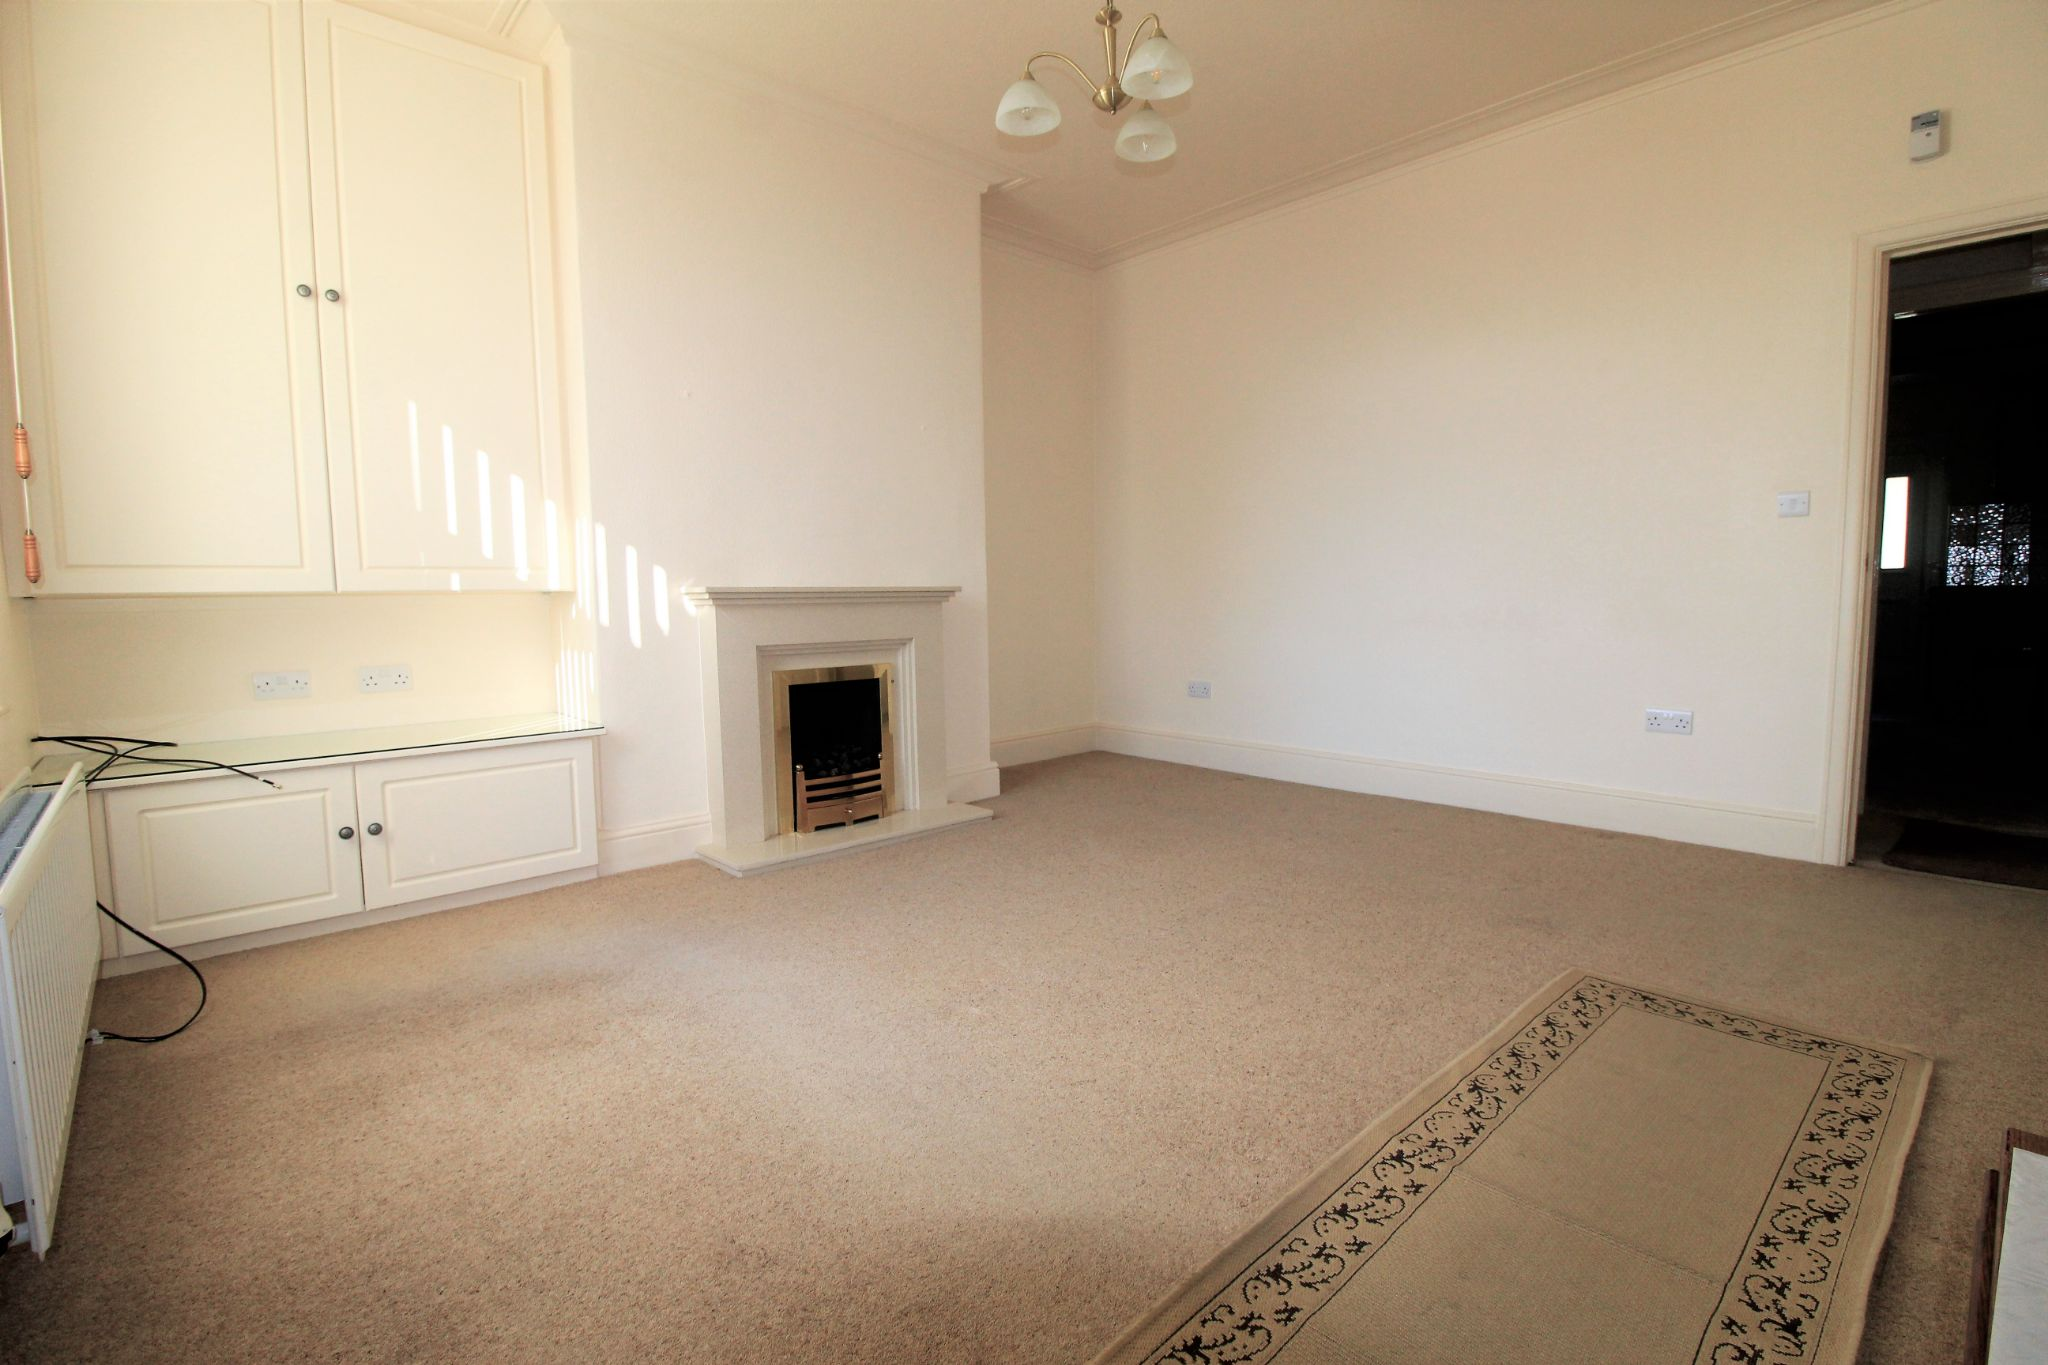 2 bedroom mid terraced house SSTC in Brighouse - Photograph 15